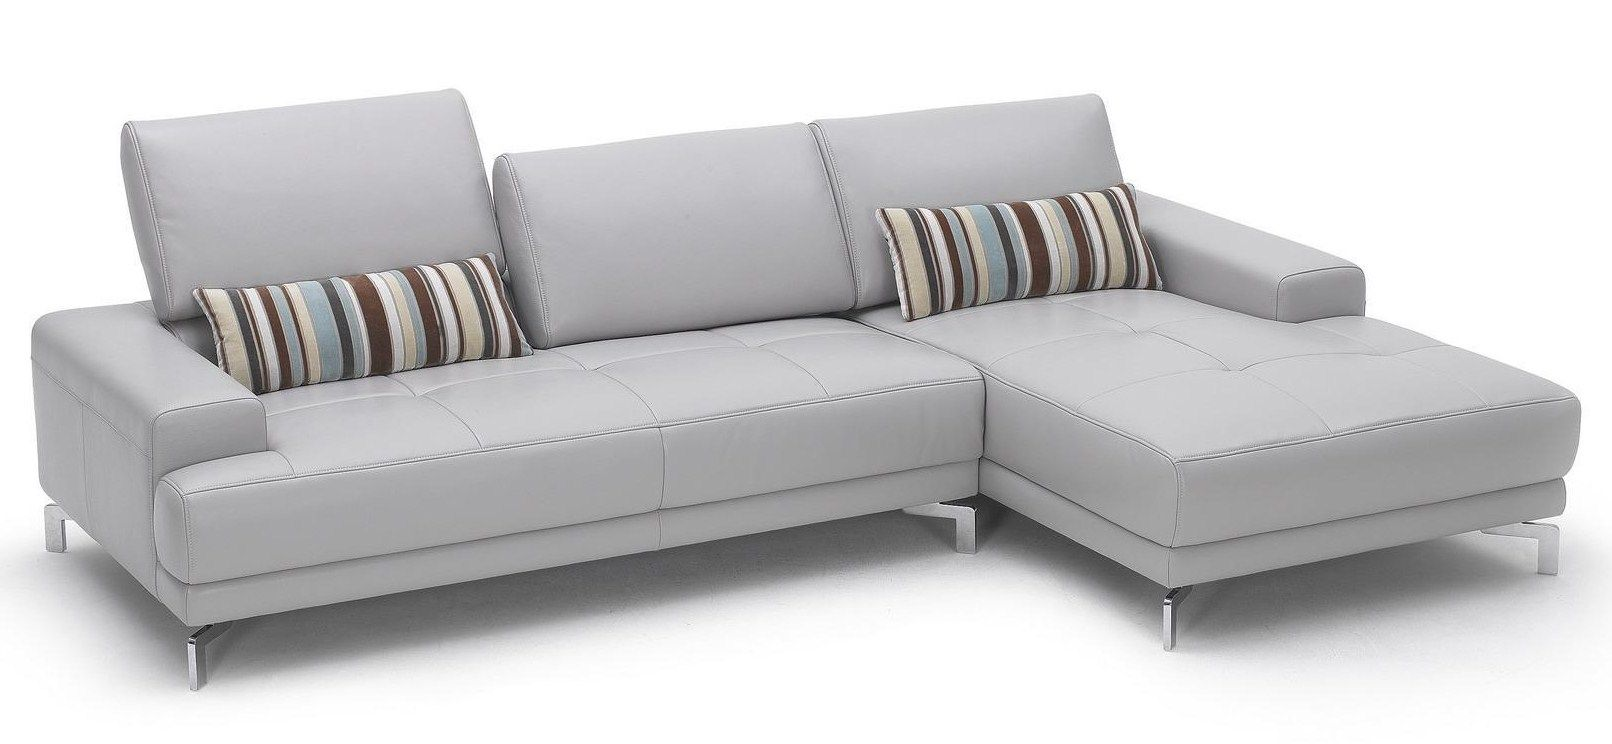 The Couch Meaning Why It S Popular And Tips To Buying One Anlamli Net In 2020 Sectional Sofa With Chaise Sectional Sofa Modern Sofa Sectional